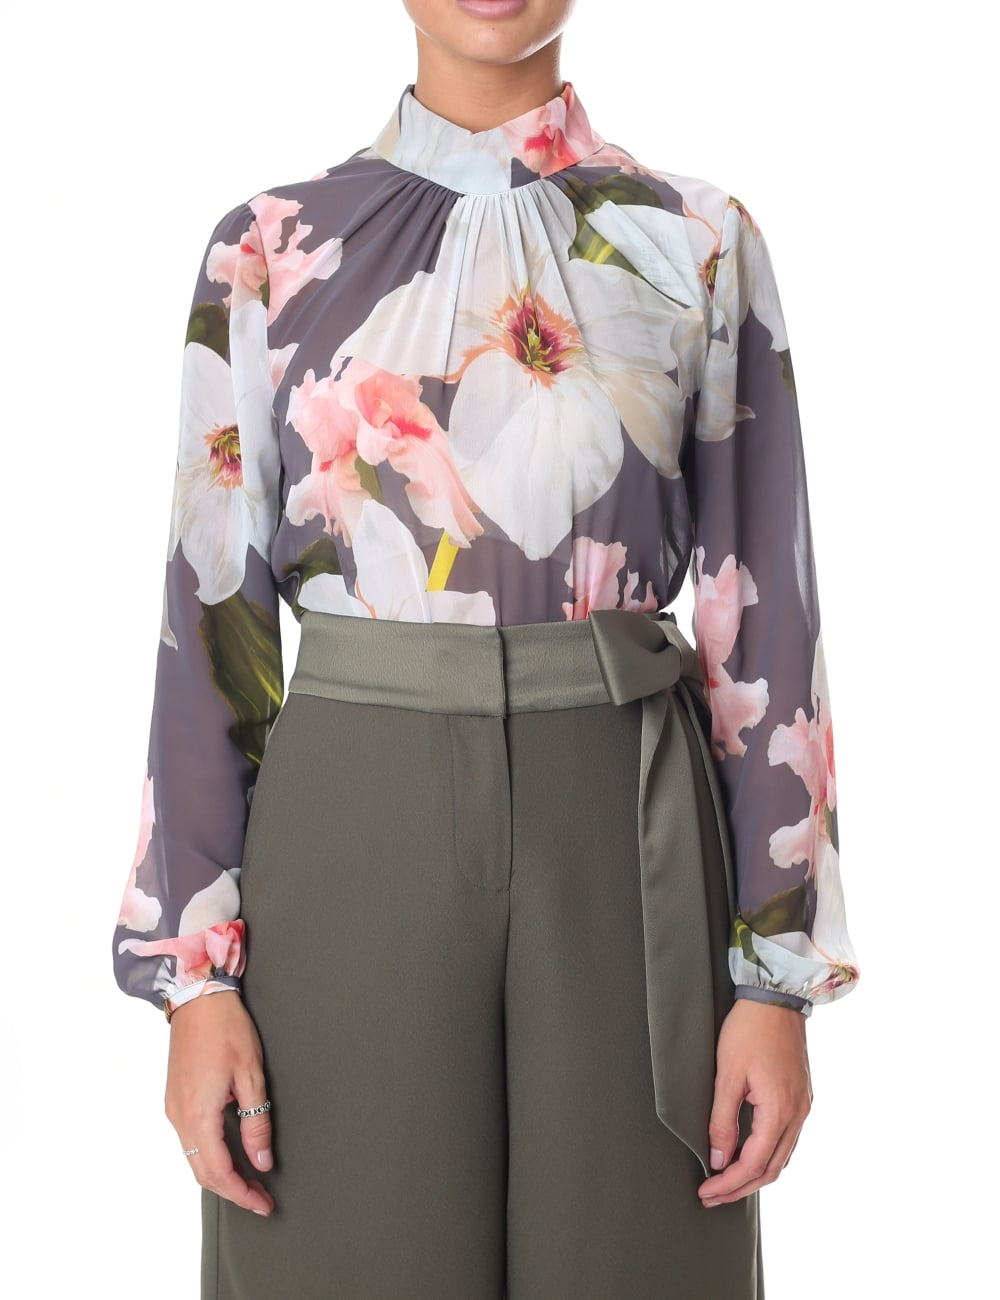 ad956969f154 Ted Baker Women s Tily Chatsworth Bloom Ruched Blouse